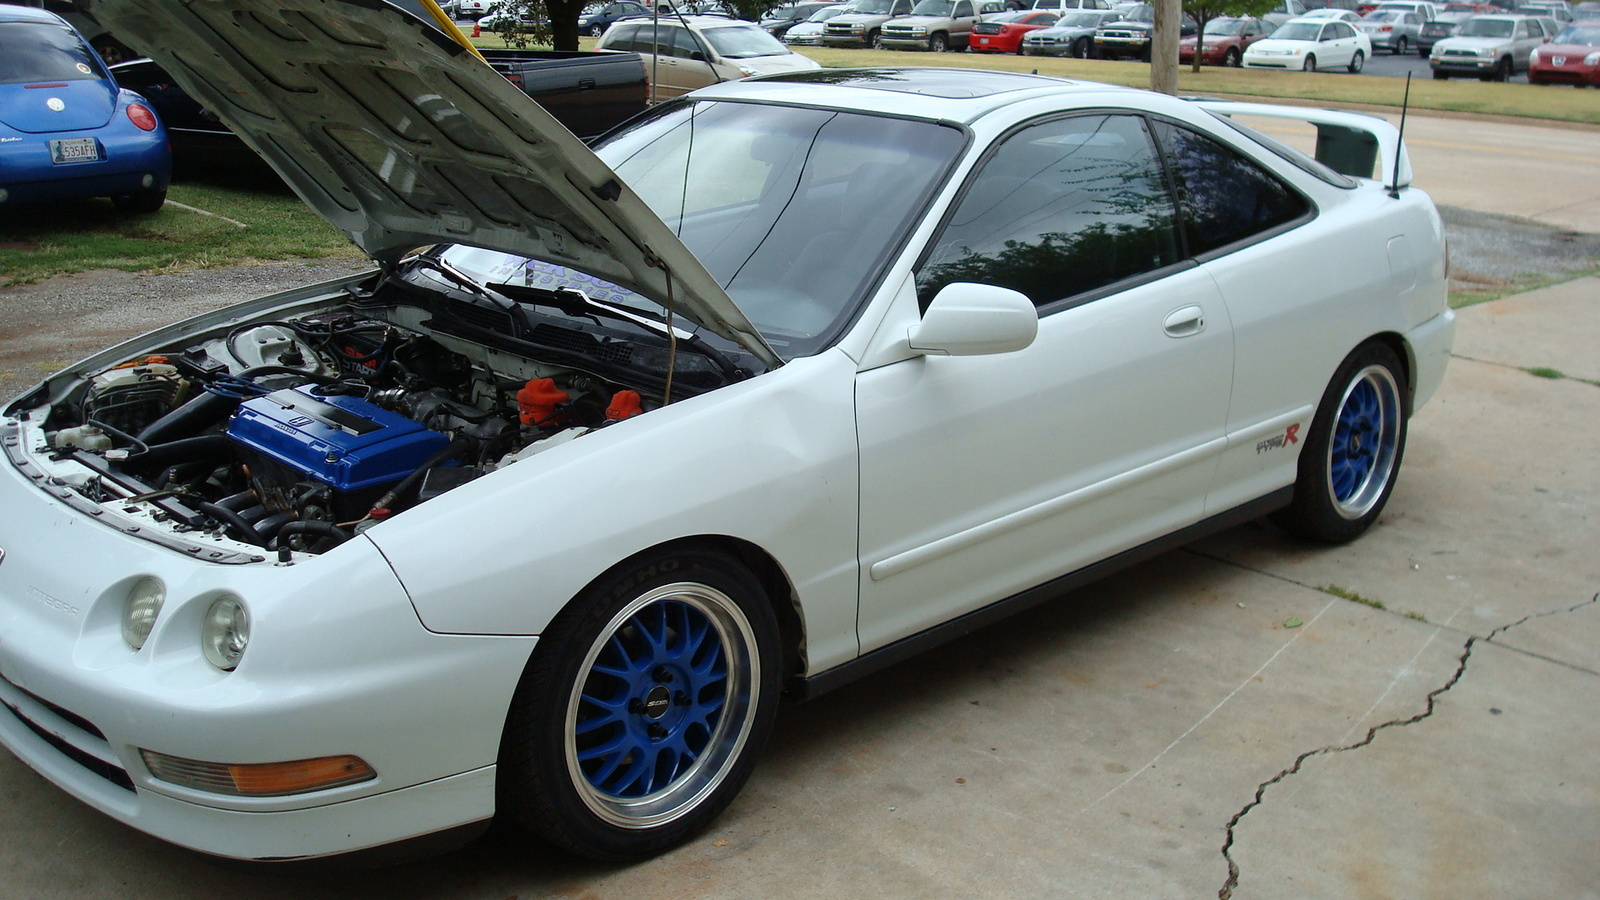 1996 Acura Integra picture